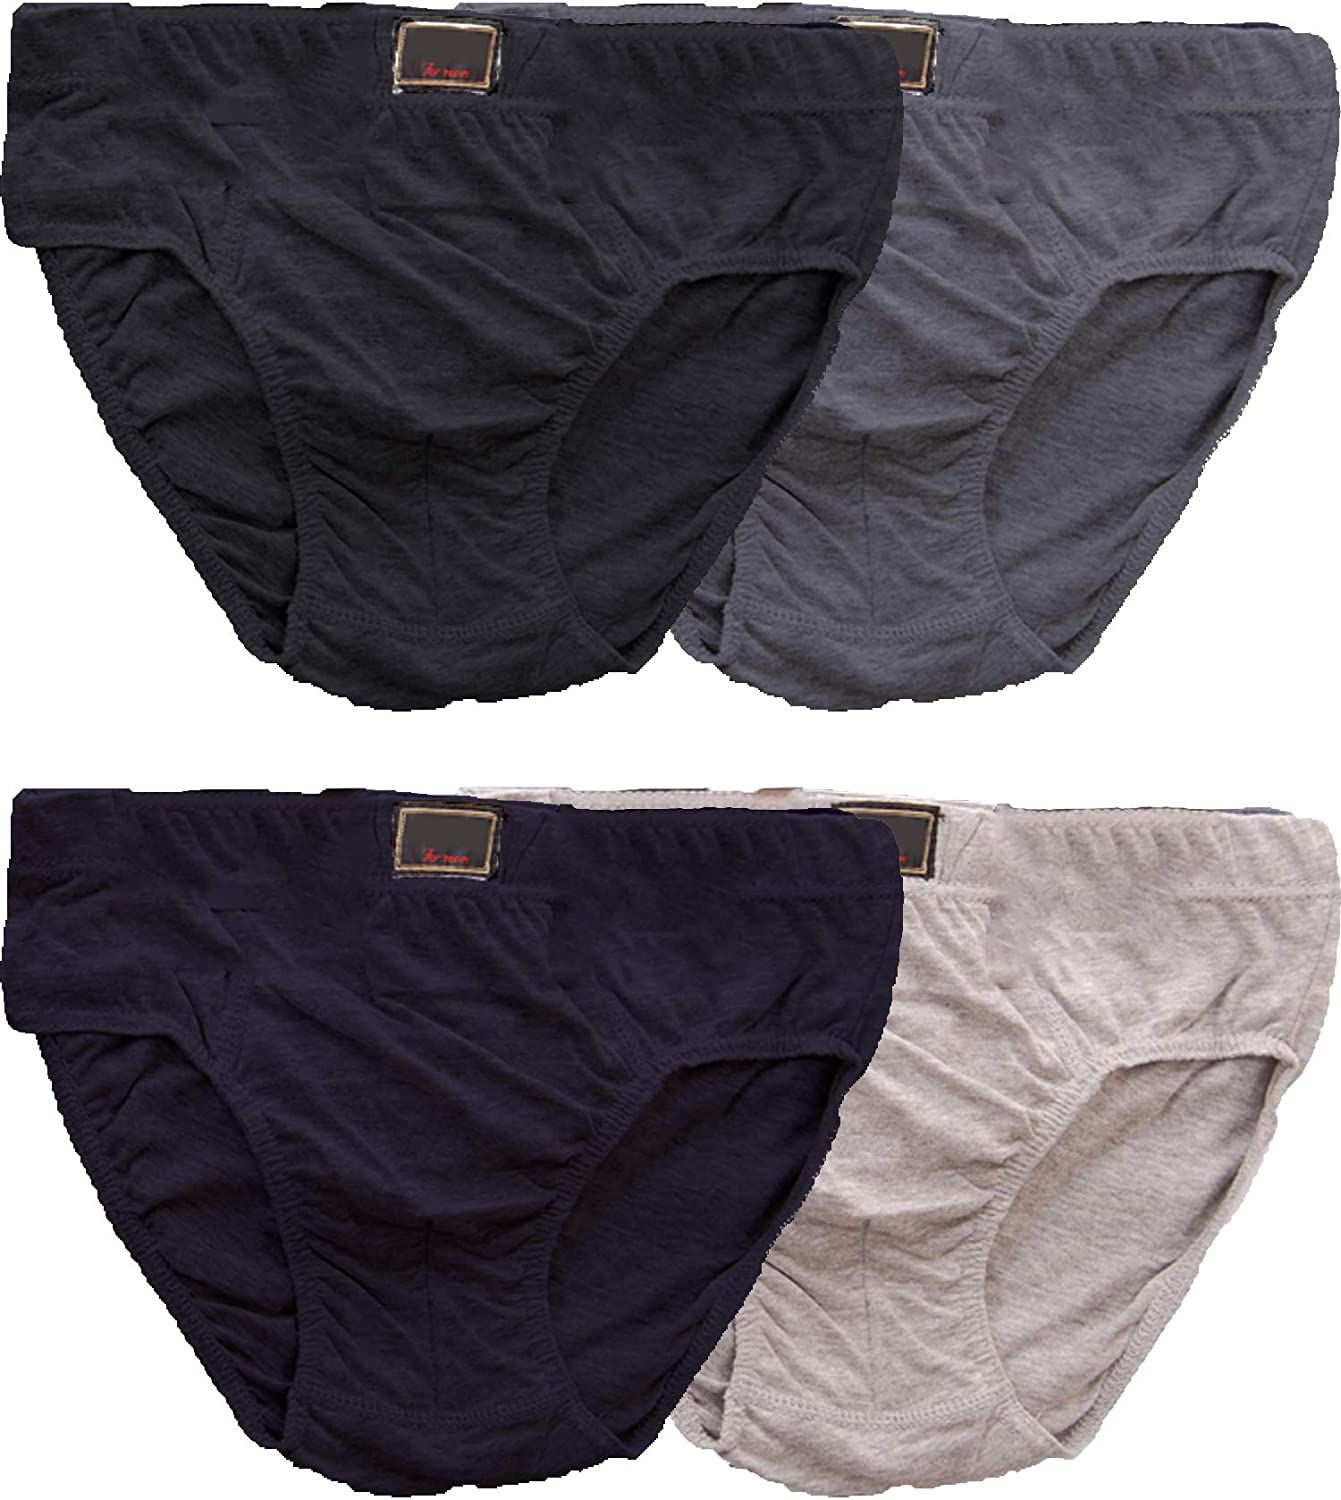 PACK OF 1 3 6 12 MENS BRIEFS SLIPS CLASSIC UNDERWEAR PANTS HIPSTER COTTON LOT